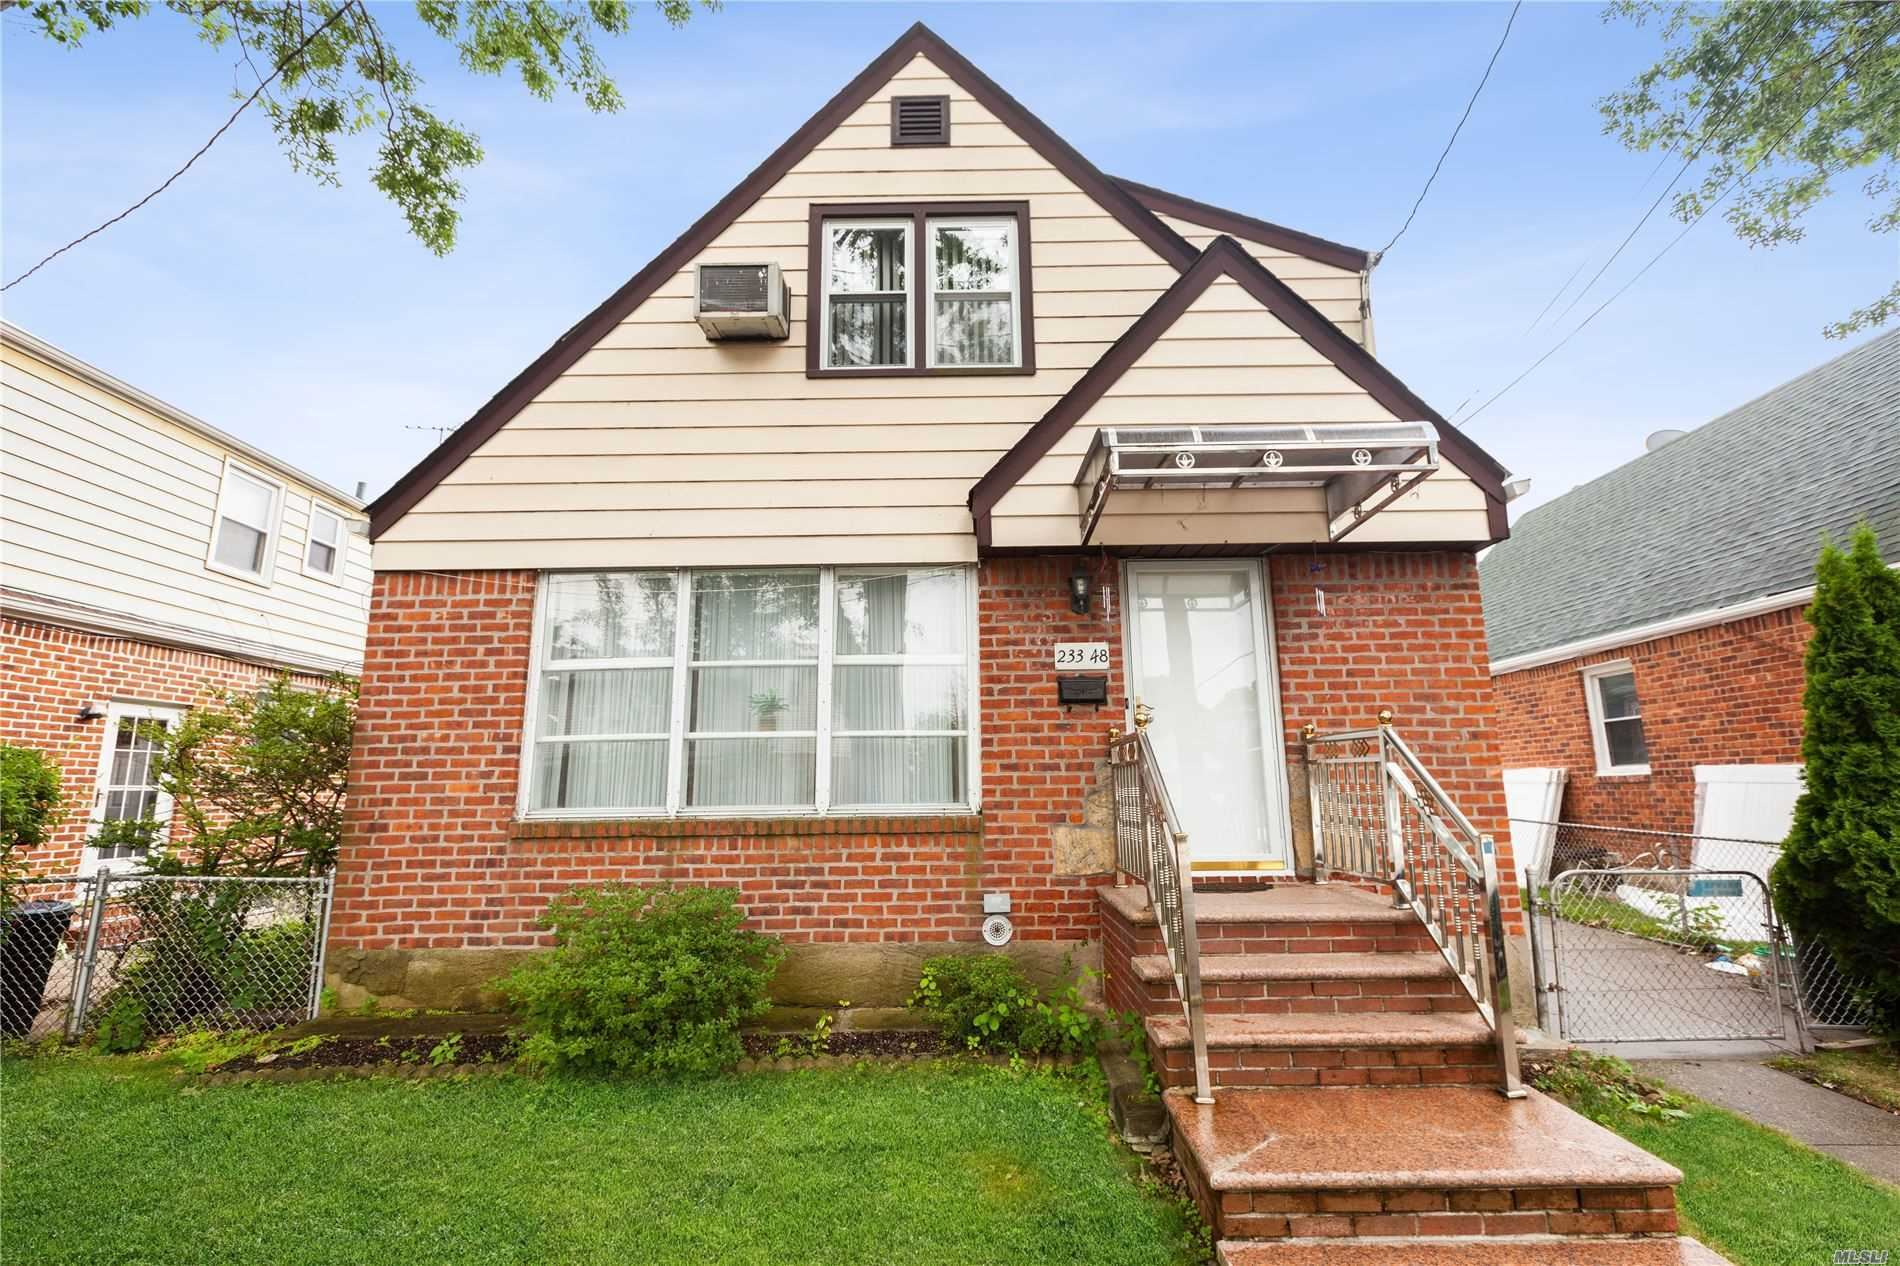 233-48 87th Ave, Queens Village, NY 11427 - MLS#: 3236868